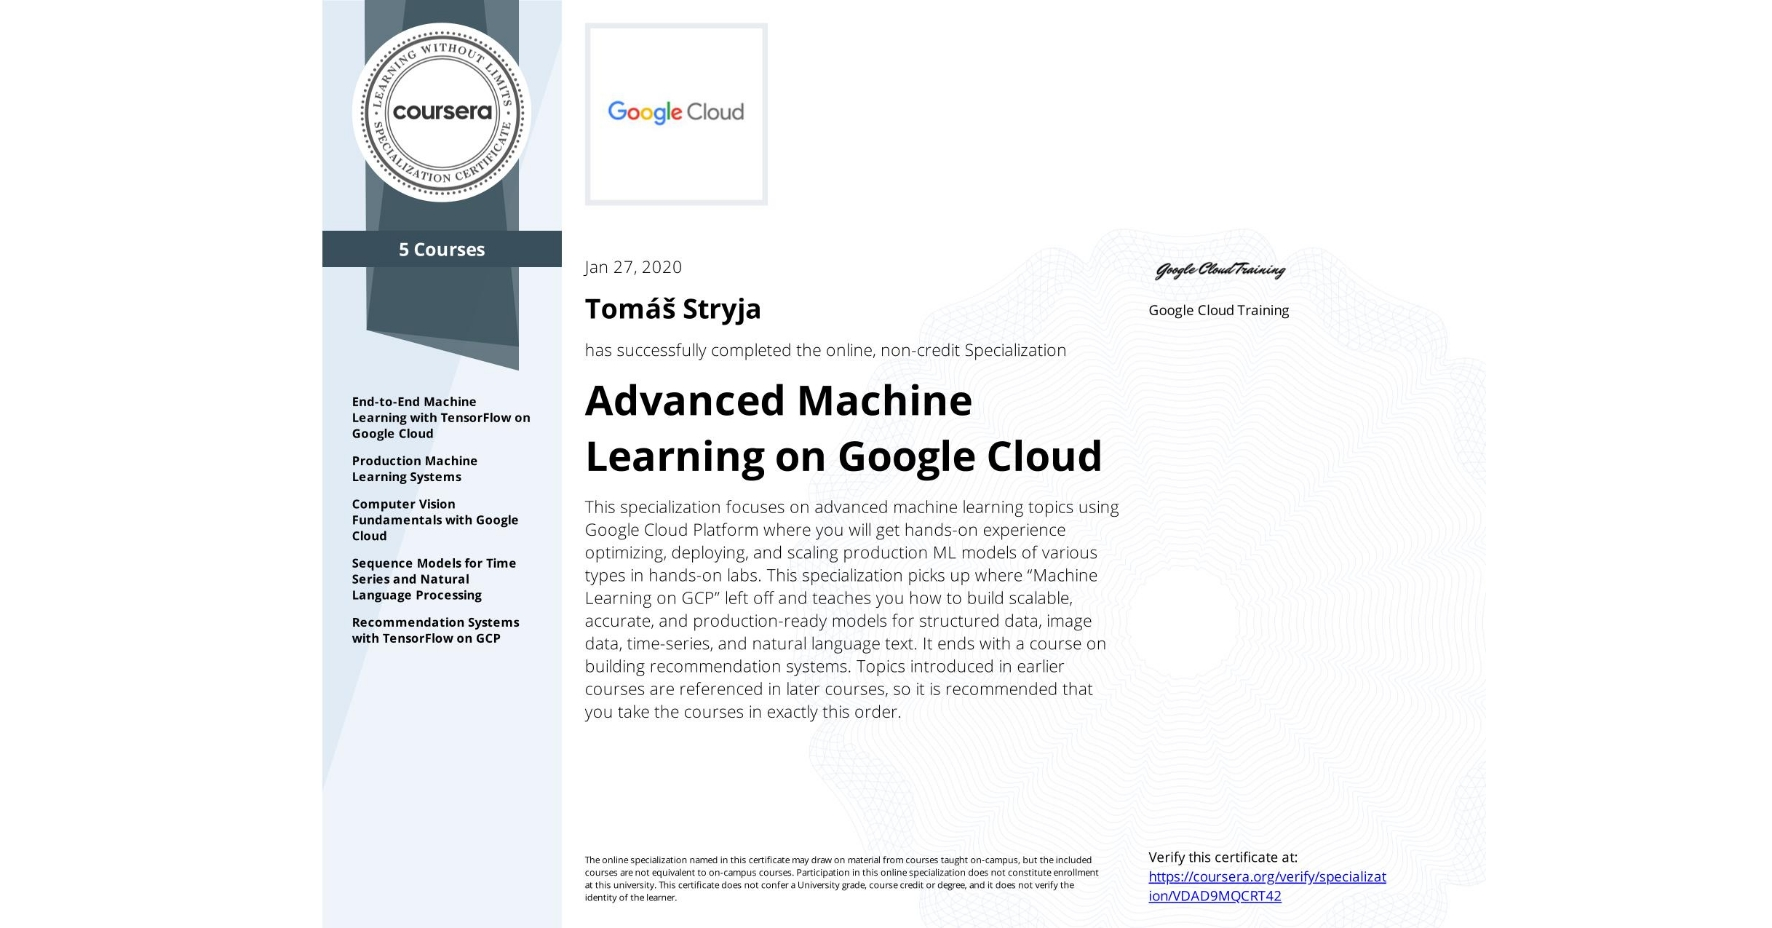 """View certificate for Tomáš Stryja, Advanced Machine Learning with TensorFlow on Google Cloud Platform, offered through Coursera. This specialization focuses on advanced machine learning topics using Google Cloud Platform where you will get hands-on experience optimizing, deploying, and scaling production ML models of various types in hands-on labs. This specialization picks up where """"Machine Learning on GCP"""" left off and teaches you how to build scalable, accurate, and production-ready models for structured data, image data, time-series, and natural language text. It ends with a course on building recommendation systems. Topics introduced in earlier courses are referenced in later courses, so it is recommended that you take the courses in exactly this order."""